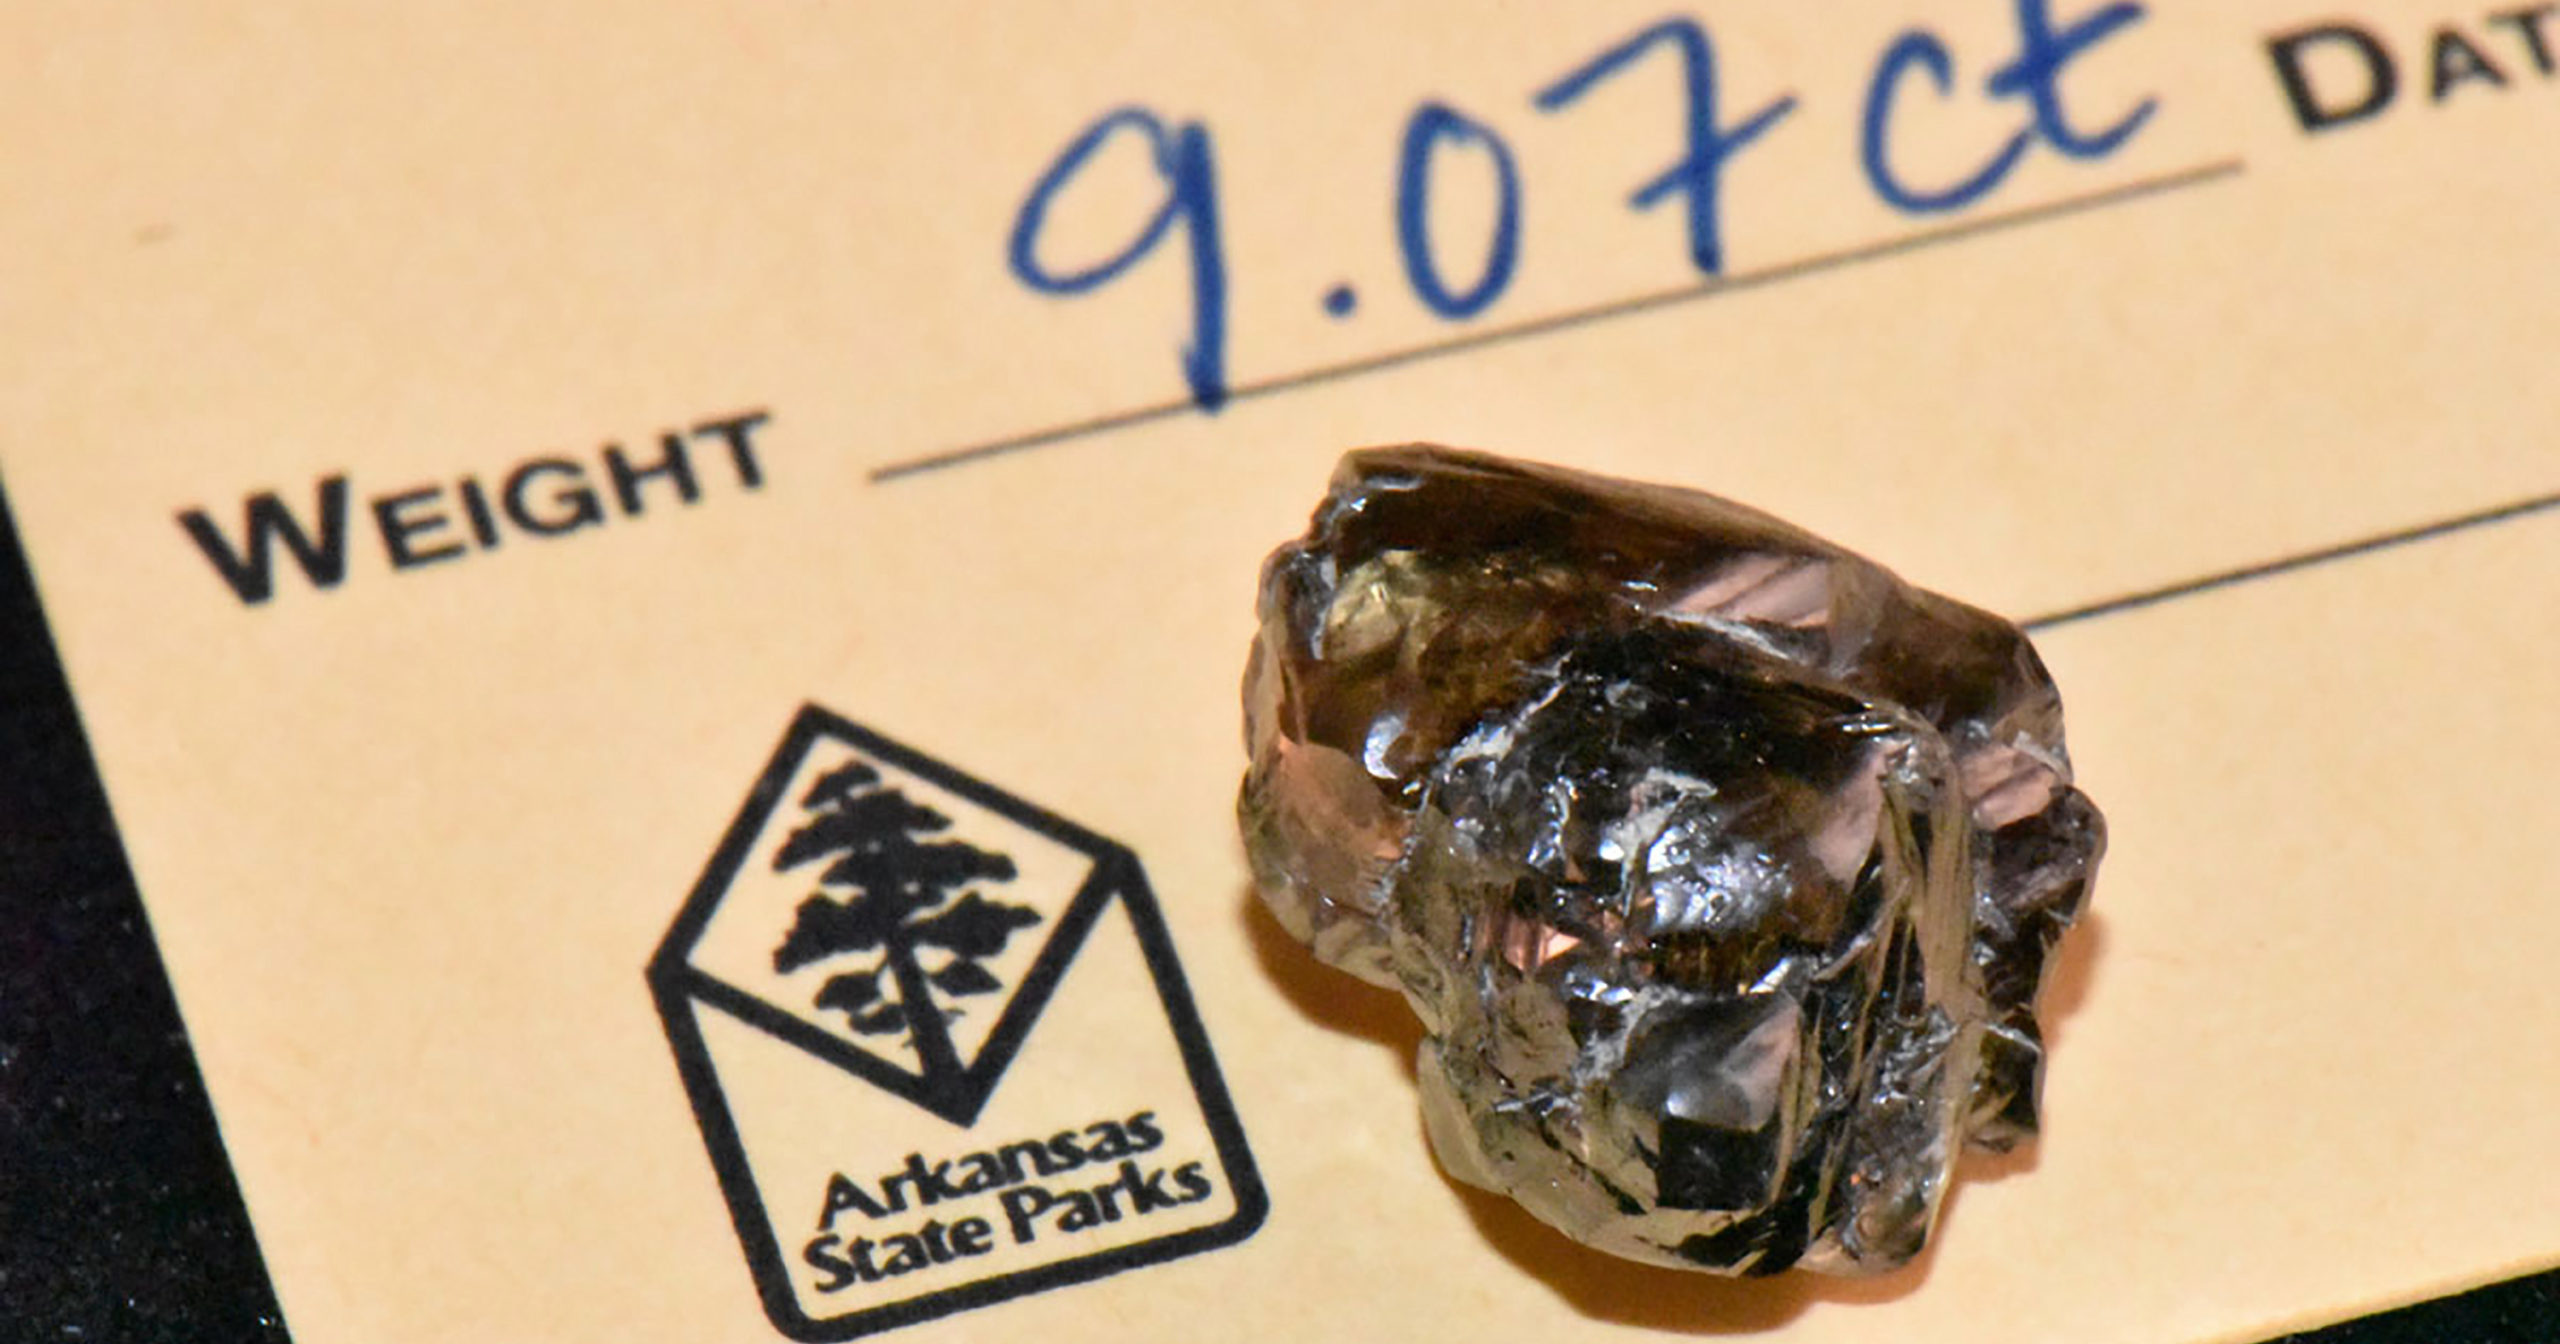 In this Sept. 23, 2020, photo provided by the Arkansas Department of Parks, Heritage and Tourism is a 9.07-carat diamond found by Kevin Kinard at Crater of Diamonds State Park on Sept, 7, 2020, in Murfreesboro, Arkansas.